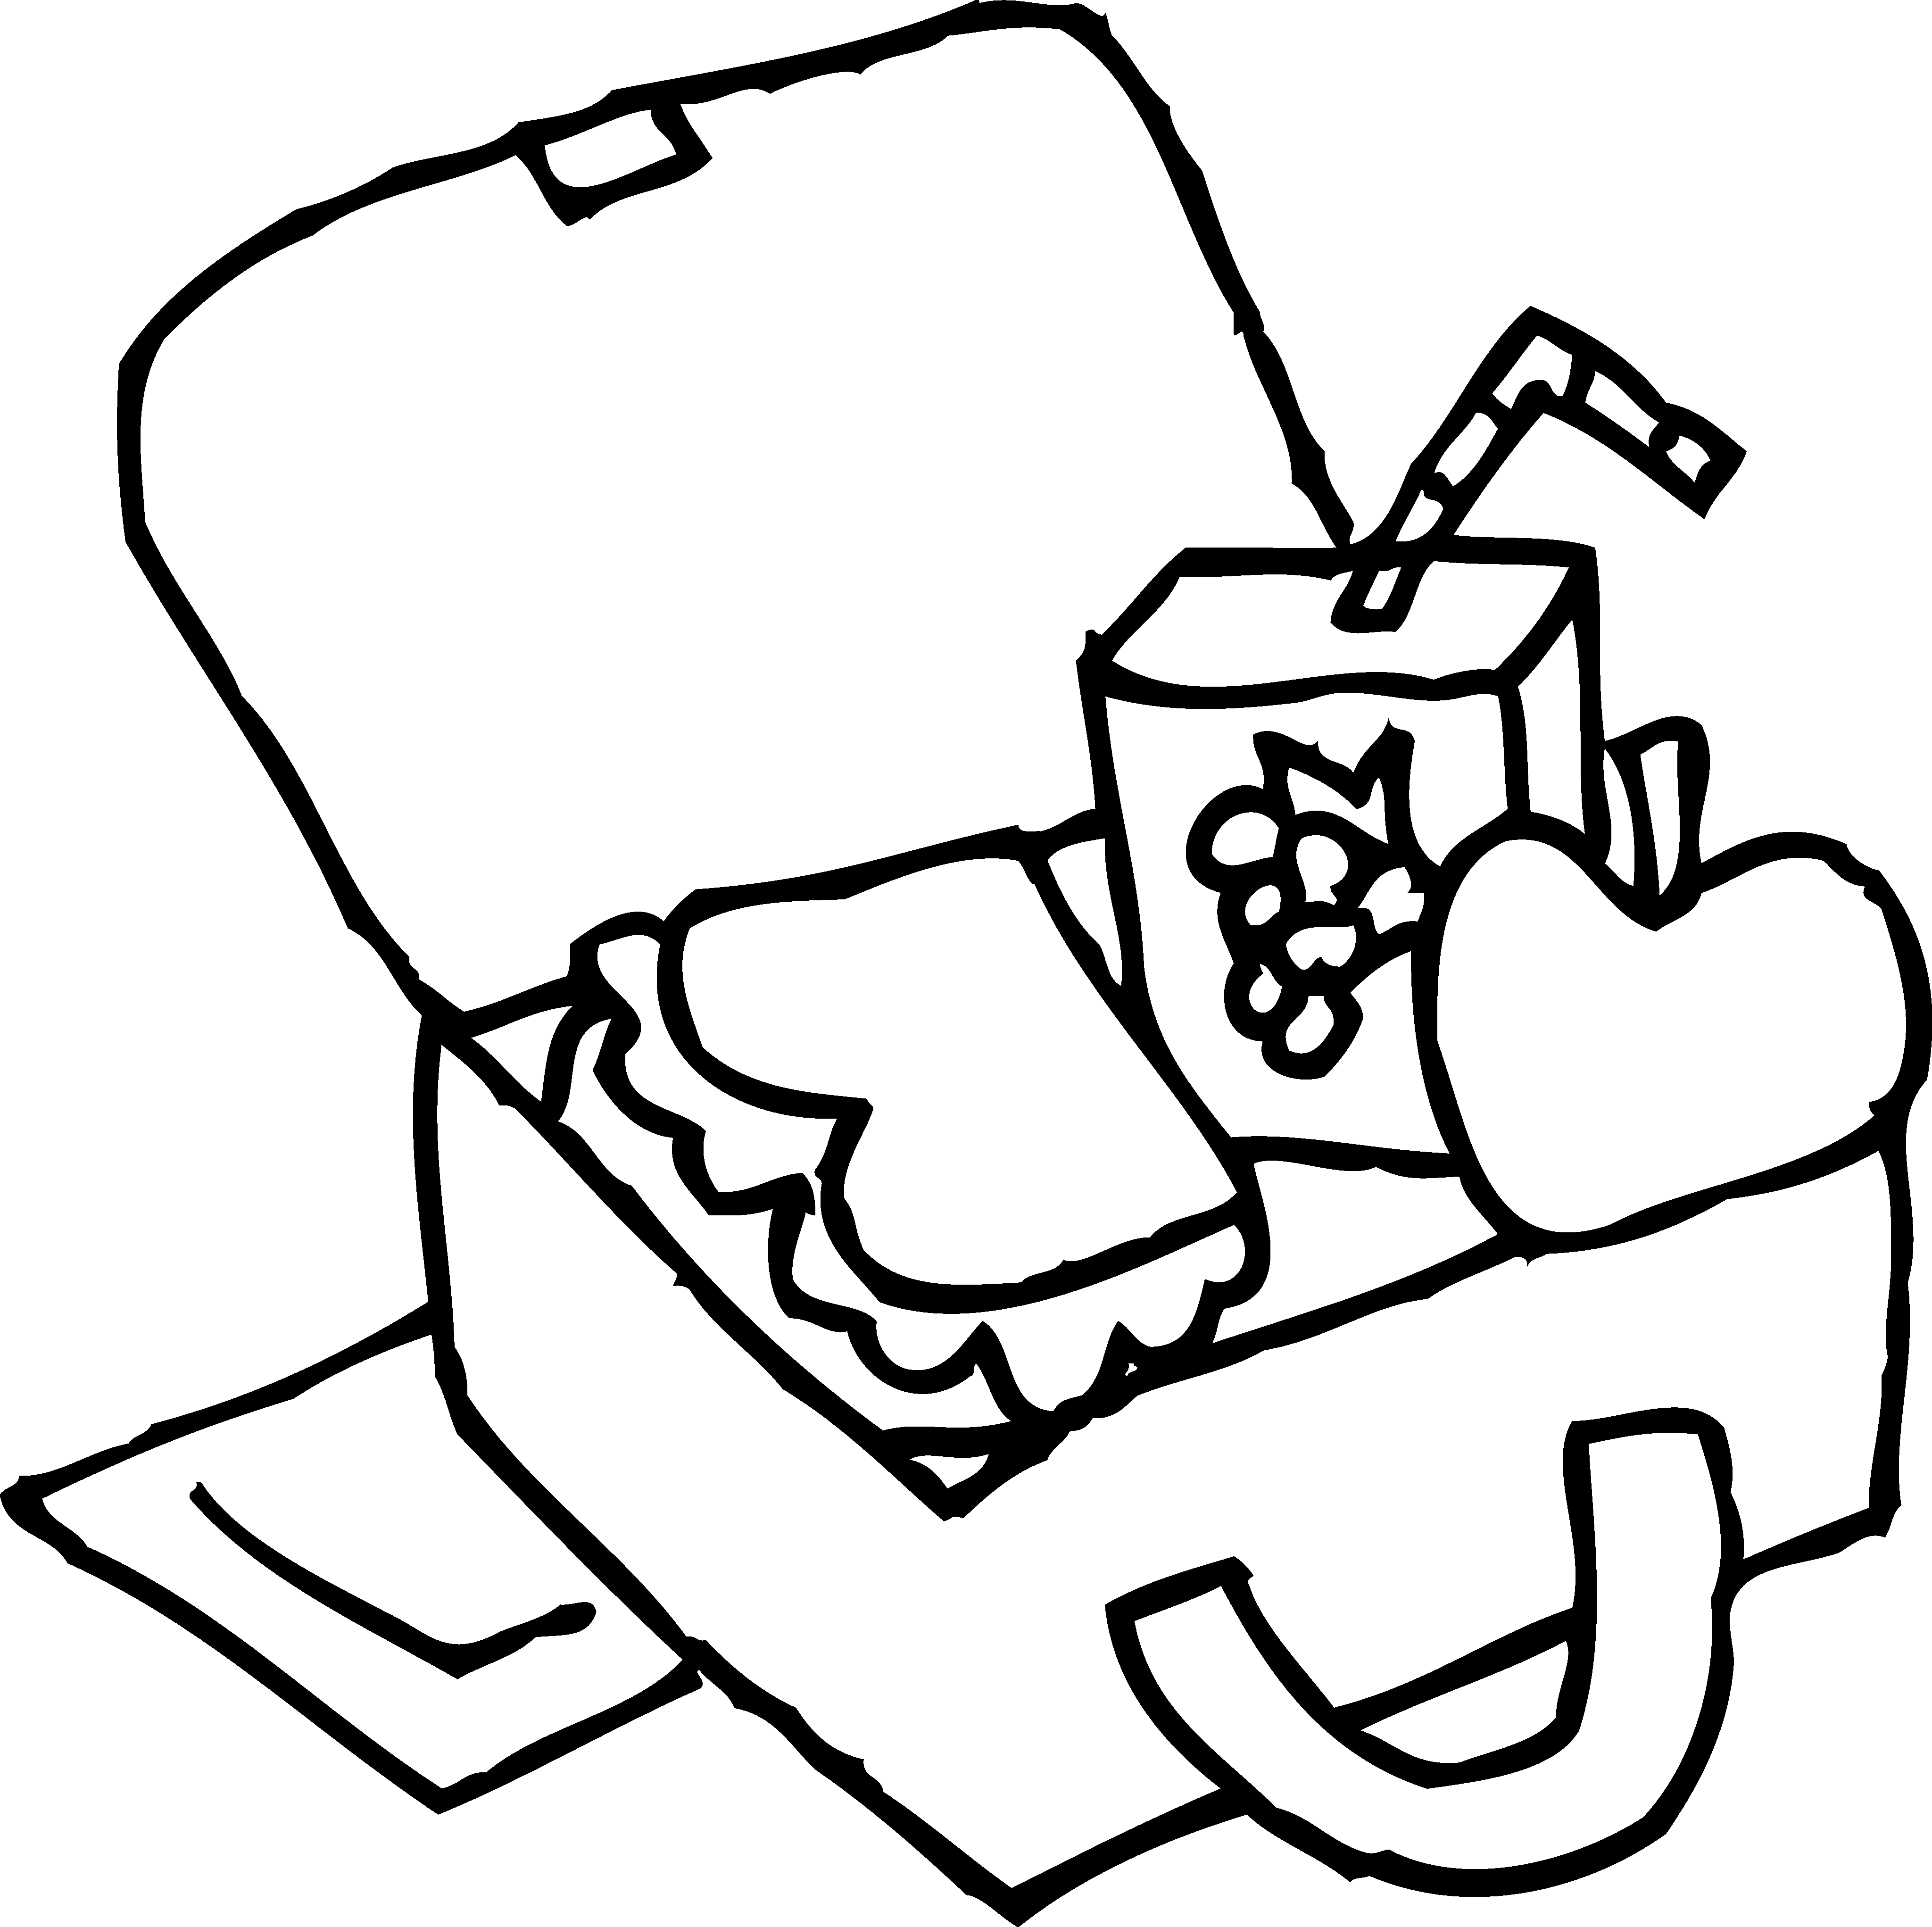 Luncheon clipart lunch item. School lunchbox coloring page